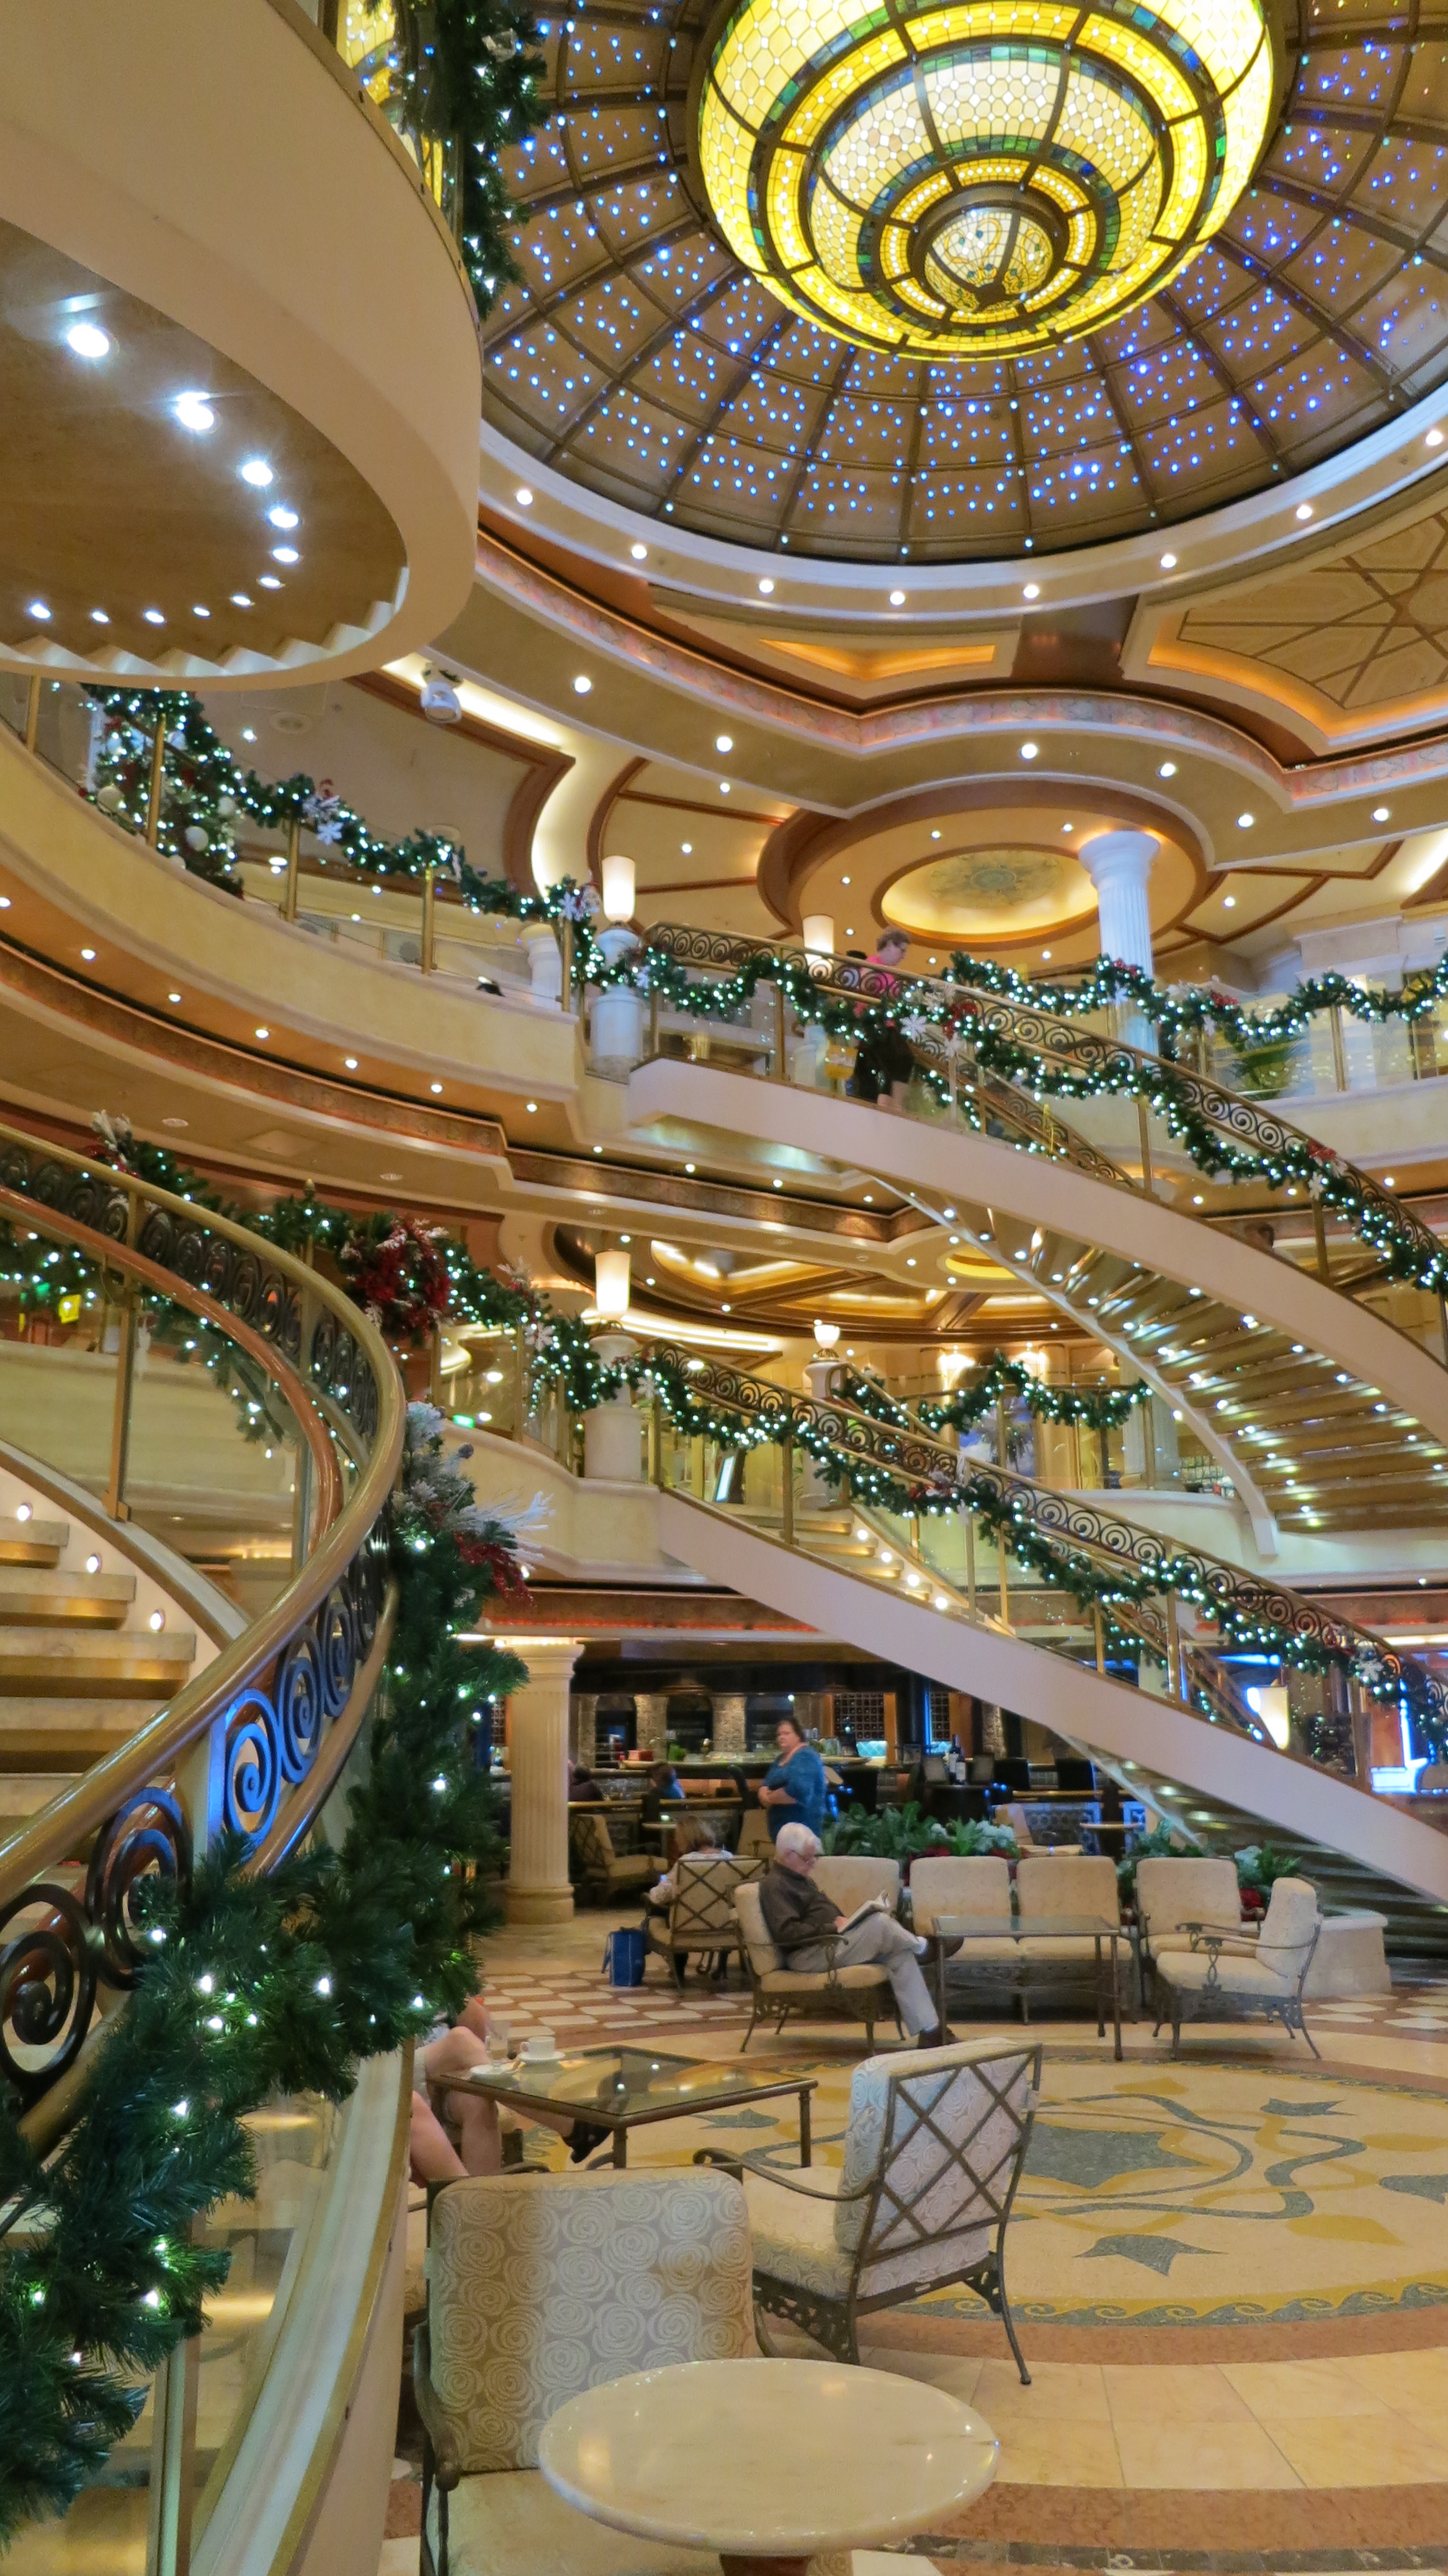 Cruise ships sell luxury and visits to exotic locations. This is an inside view of the Crown Princess.